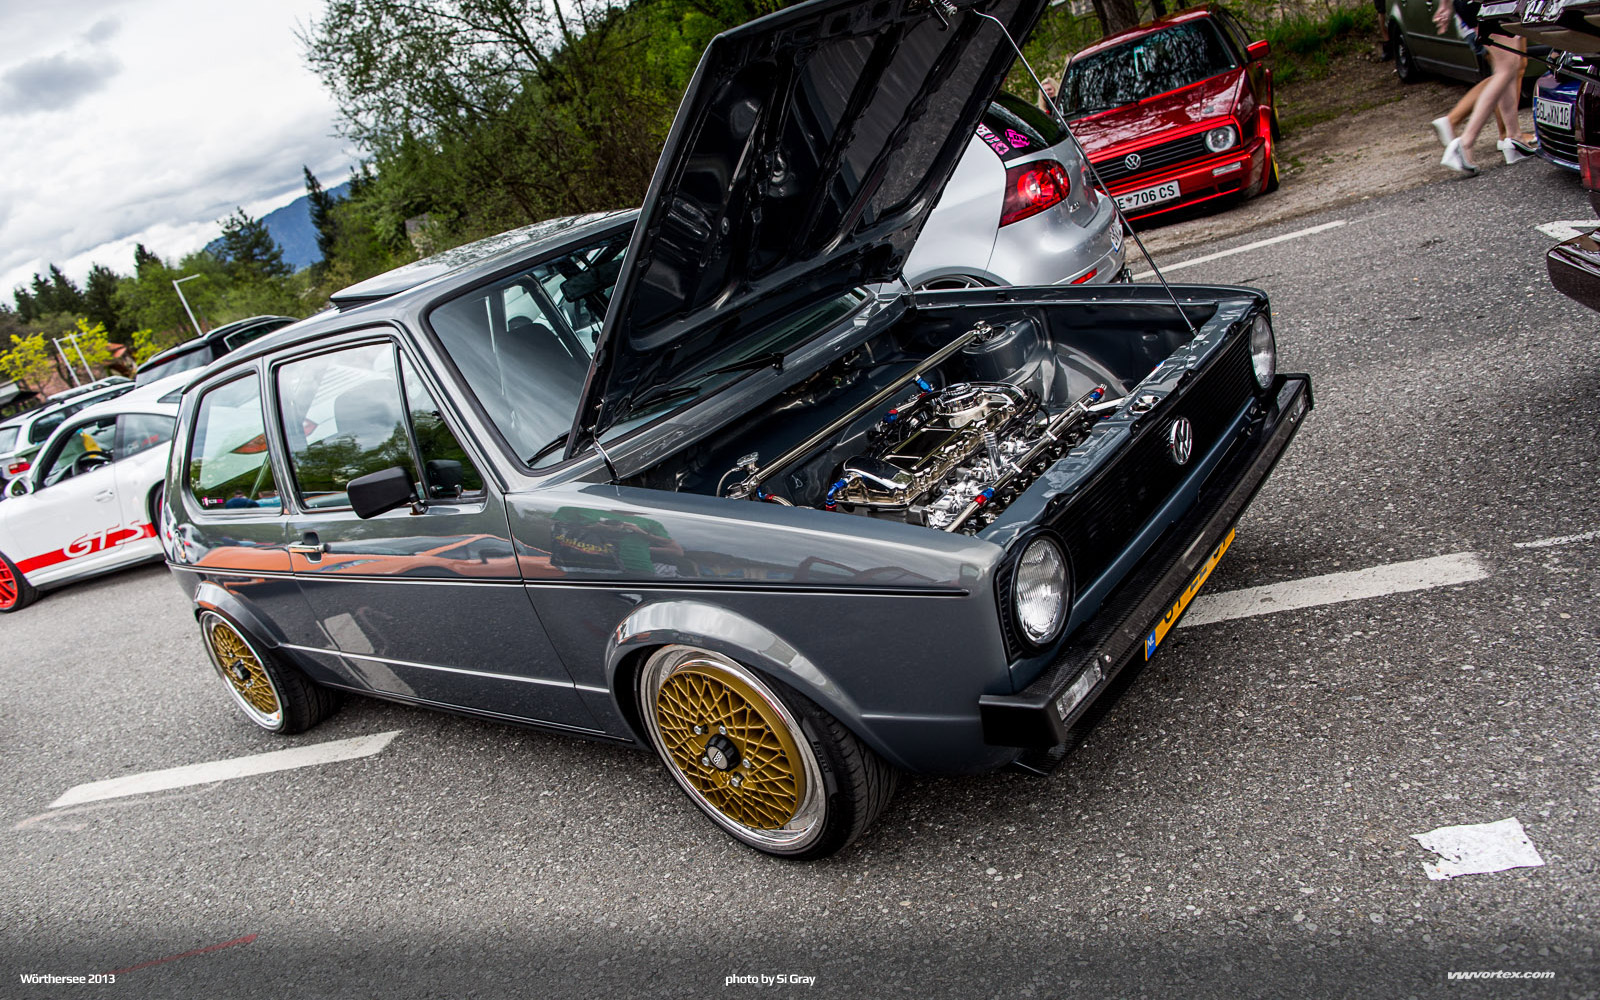 worthersee-2013-gallery-si-gray-046